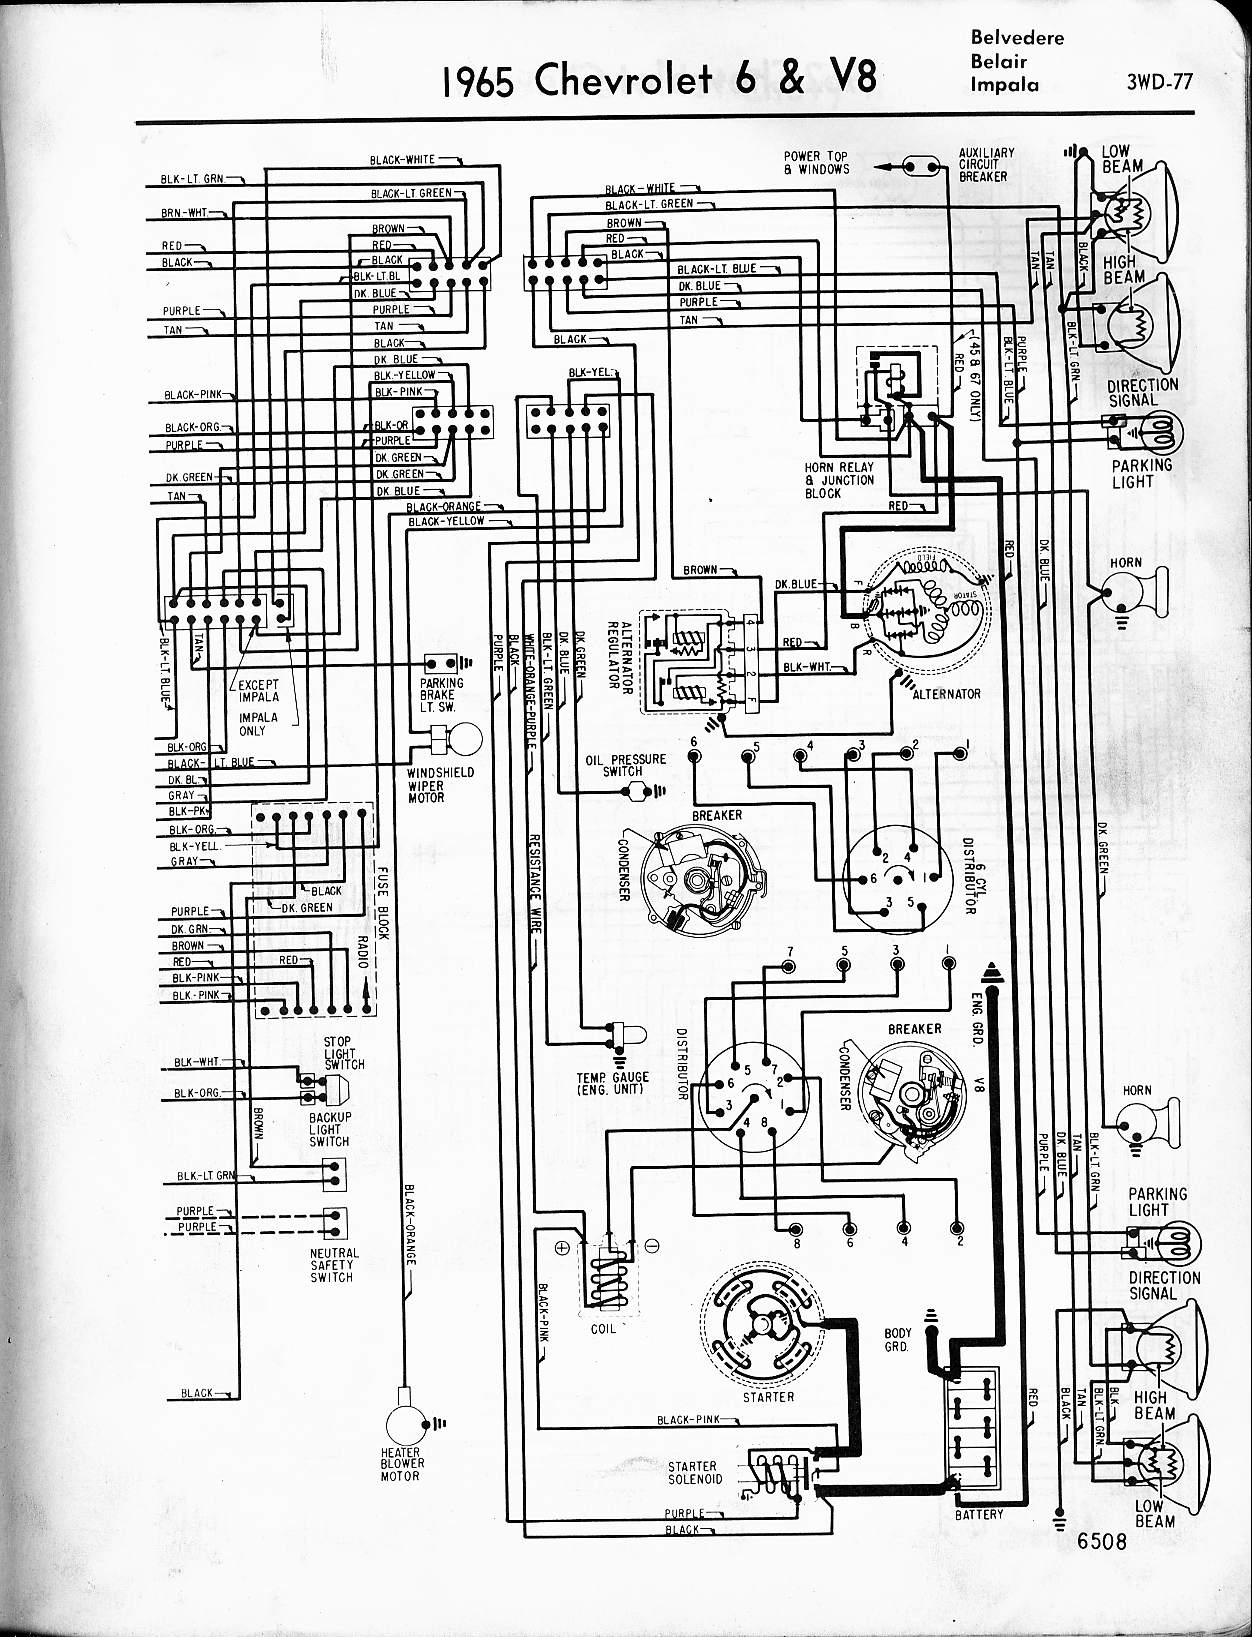 1969 chevelle wiring diagram likewise 68 camaro under dash wiring 65 chevelle dash lights temp wiring diagram 65 chevelle simple wiring diagram site 1969 chevelle wiring diagram likewise 68 camaro under dash wiring